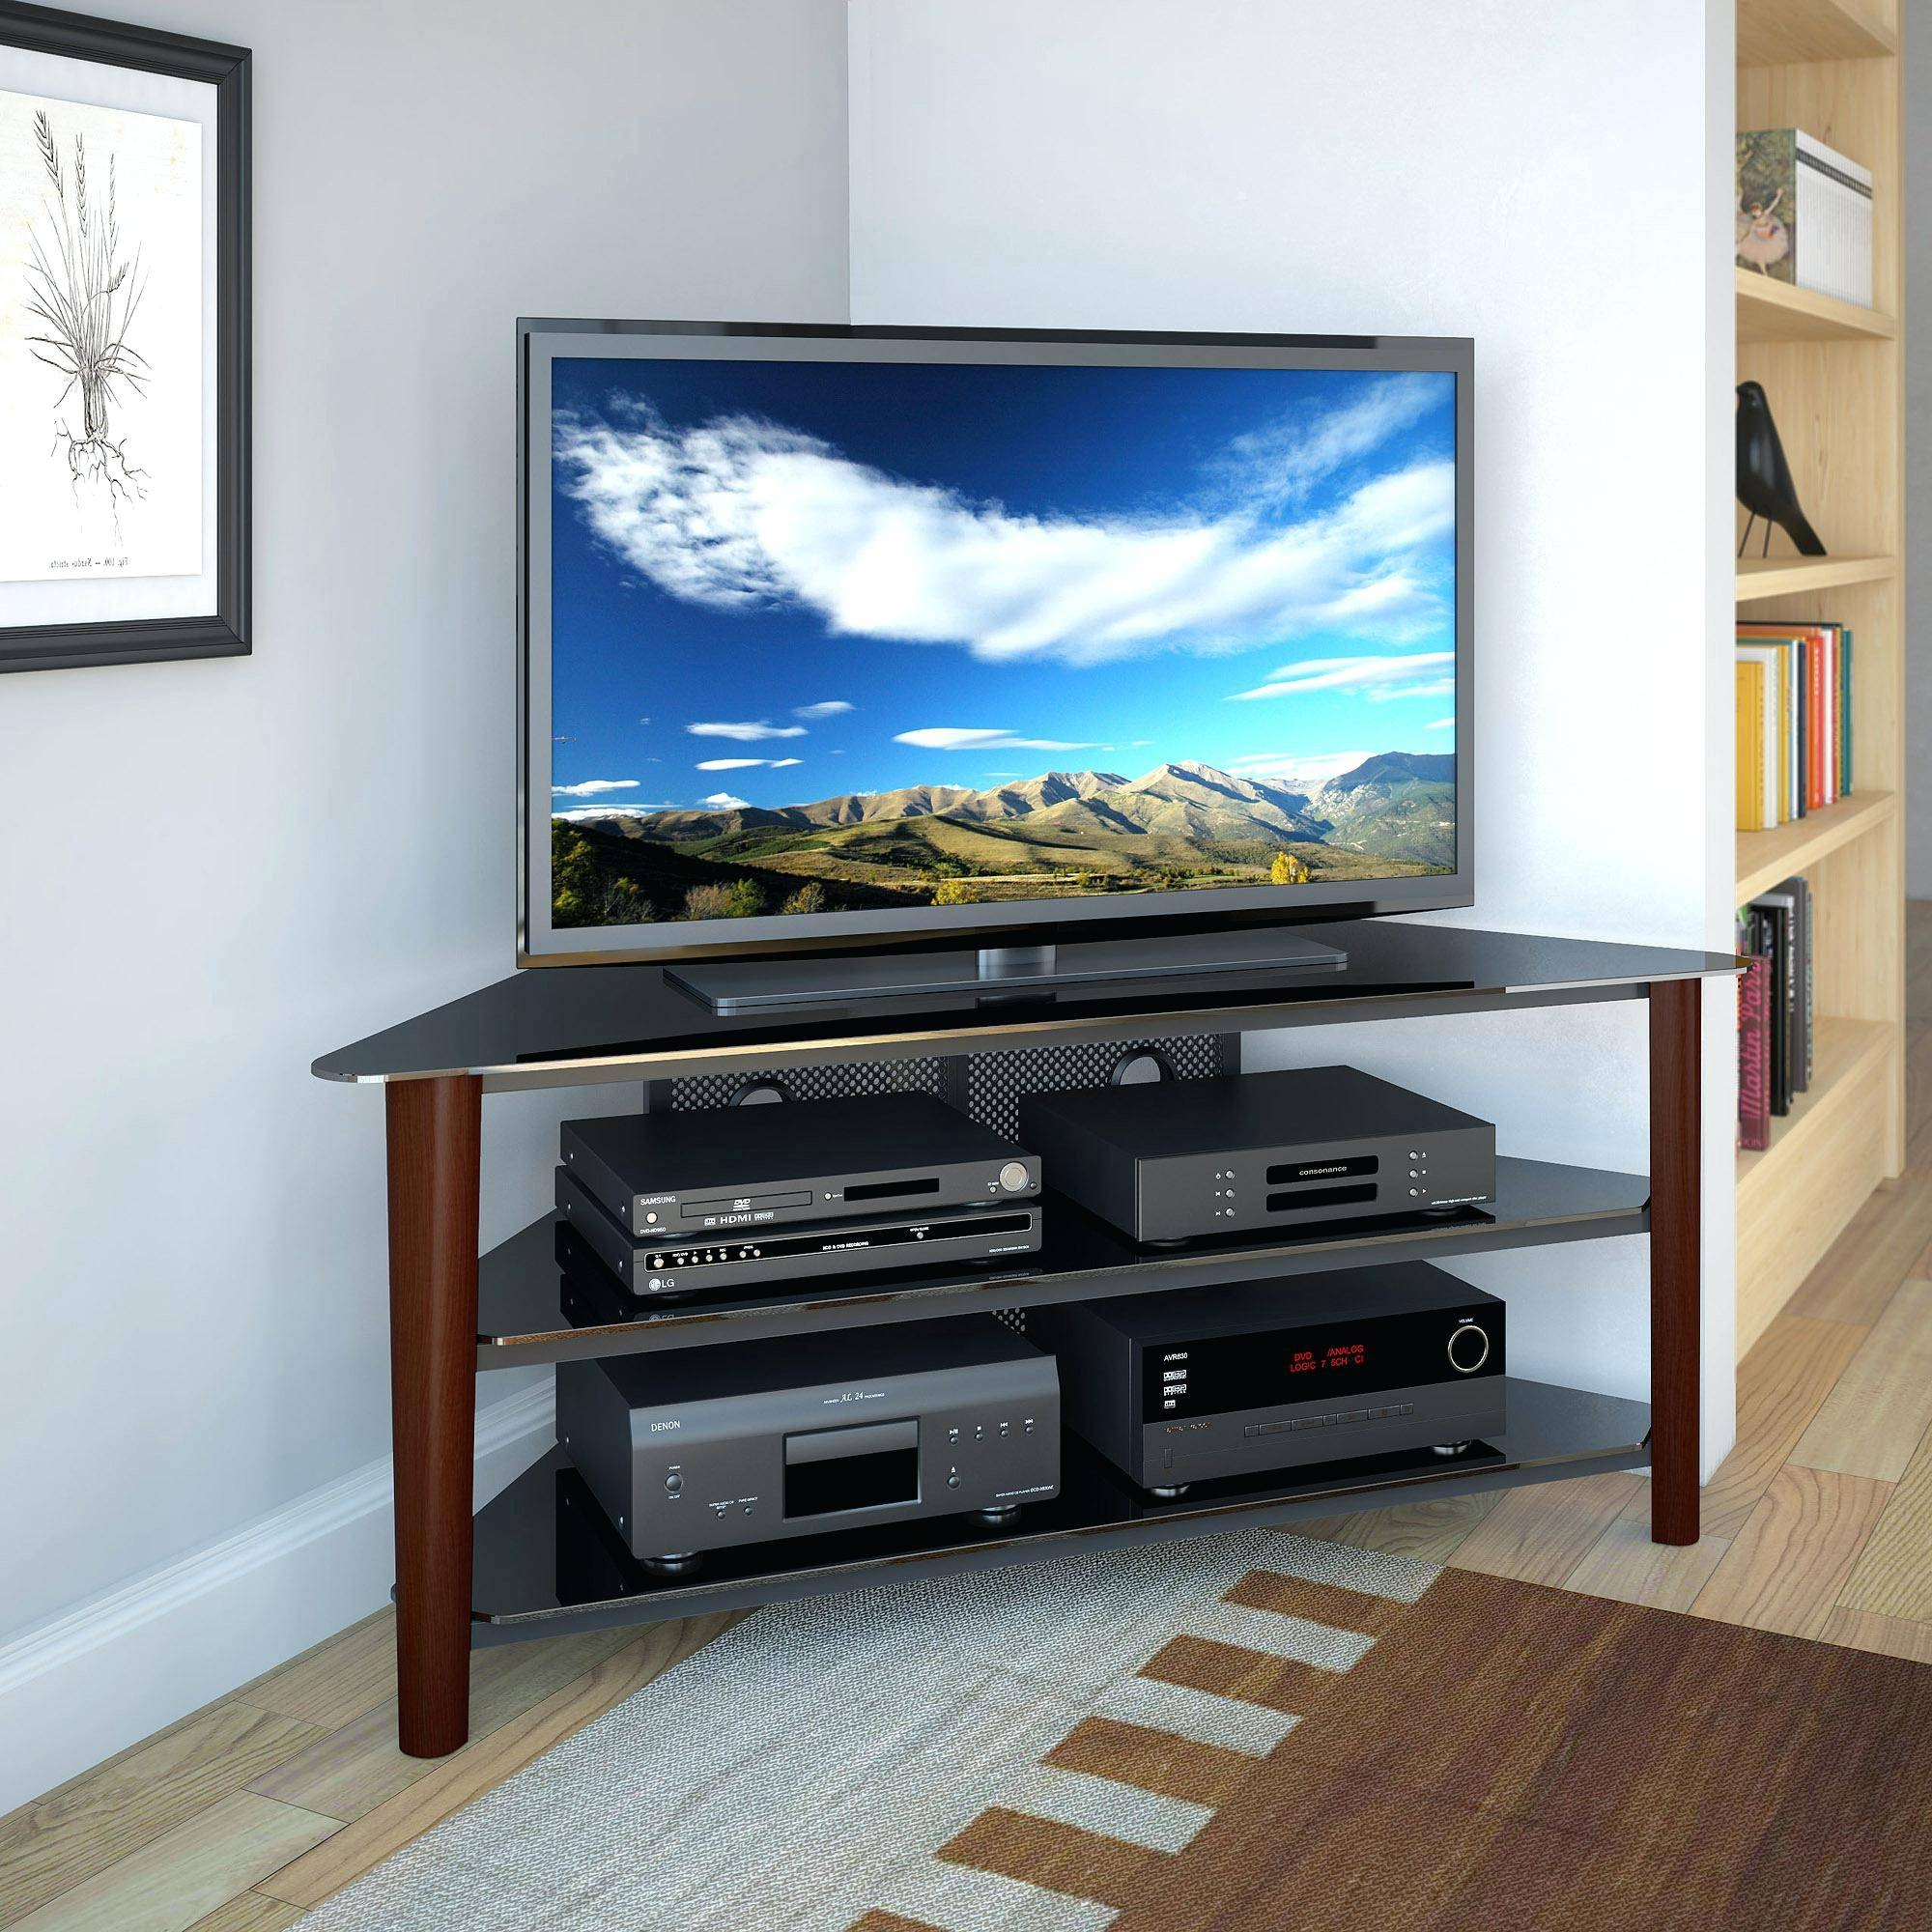 Tv Stand : Corner Tv Console 55 Inch Corner Tv Stand Flat Screen Inside Trendy Tv Stands (View 3 of 15)